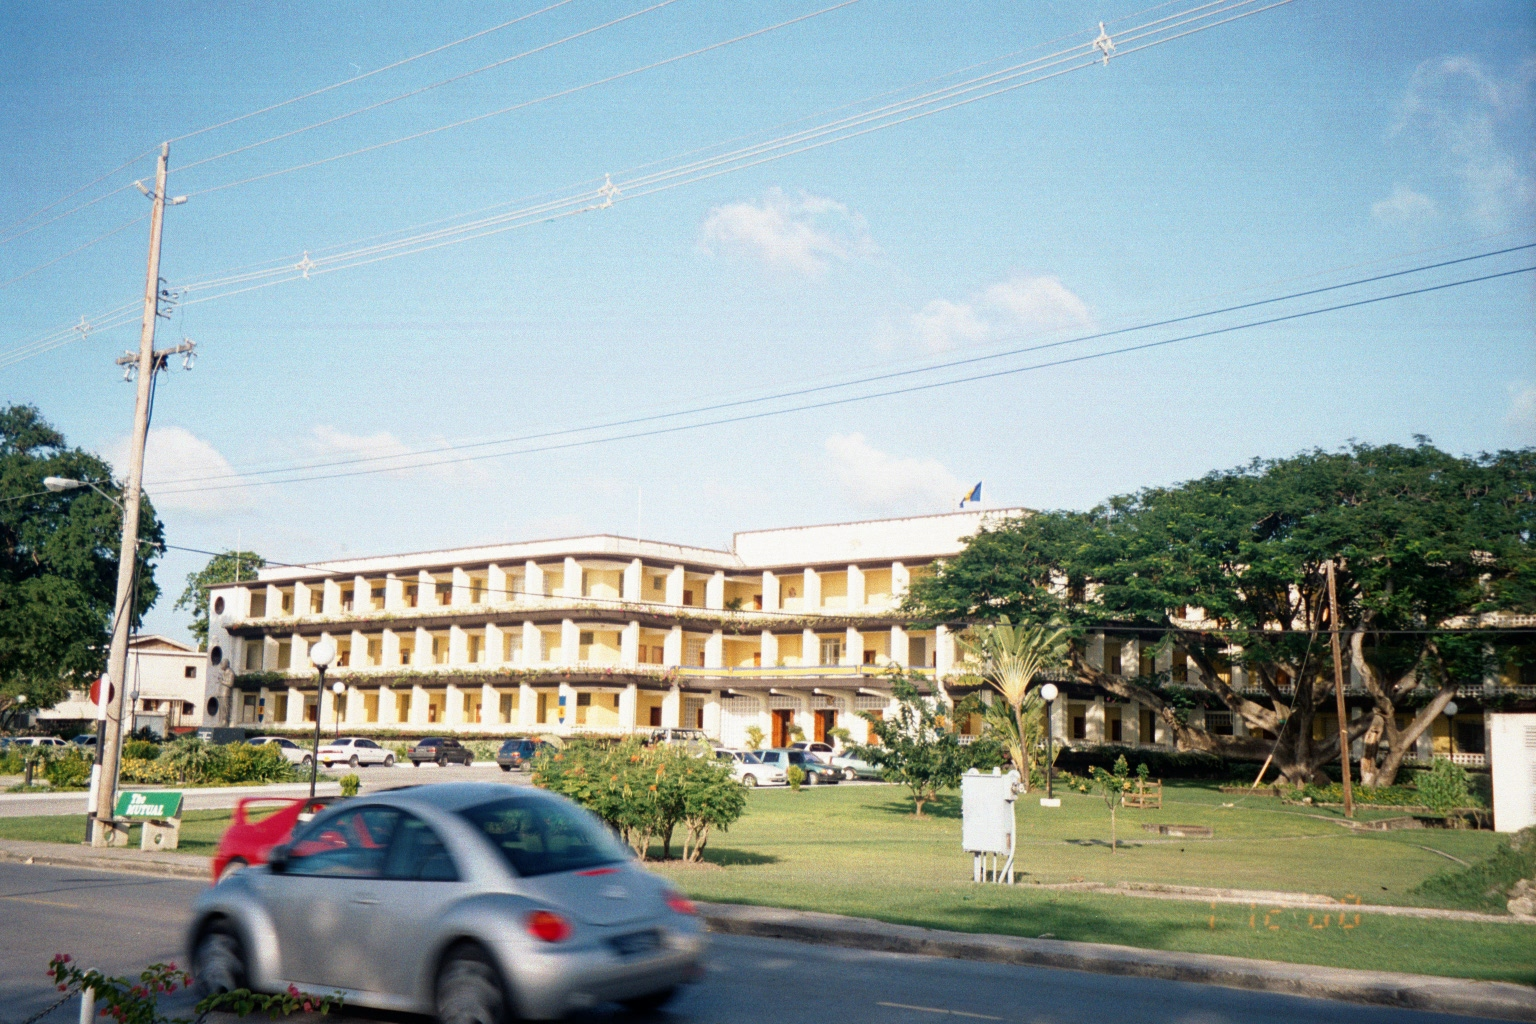 file:government headquarters2 (cabinet office), barbados